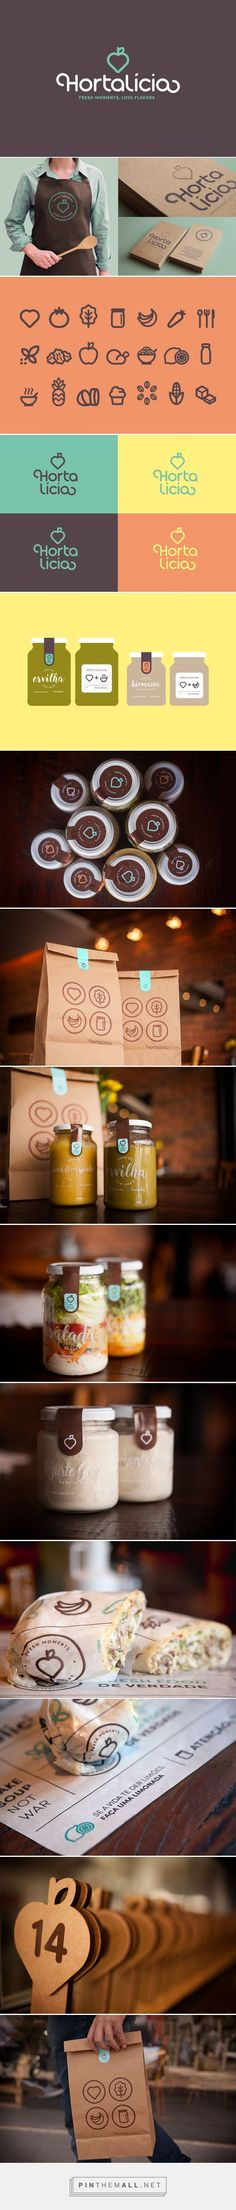 Hortalícia on Behance curated by Packaging Diva PD. giving life to branding packaging that combines healthy food to practicality, without giving up the flavor and home's warmth.: